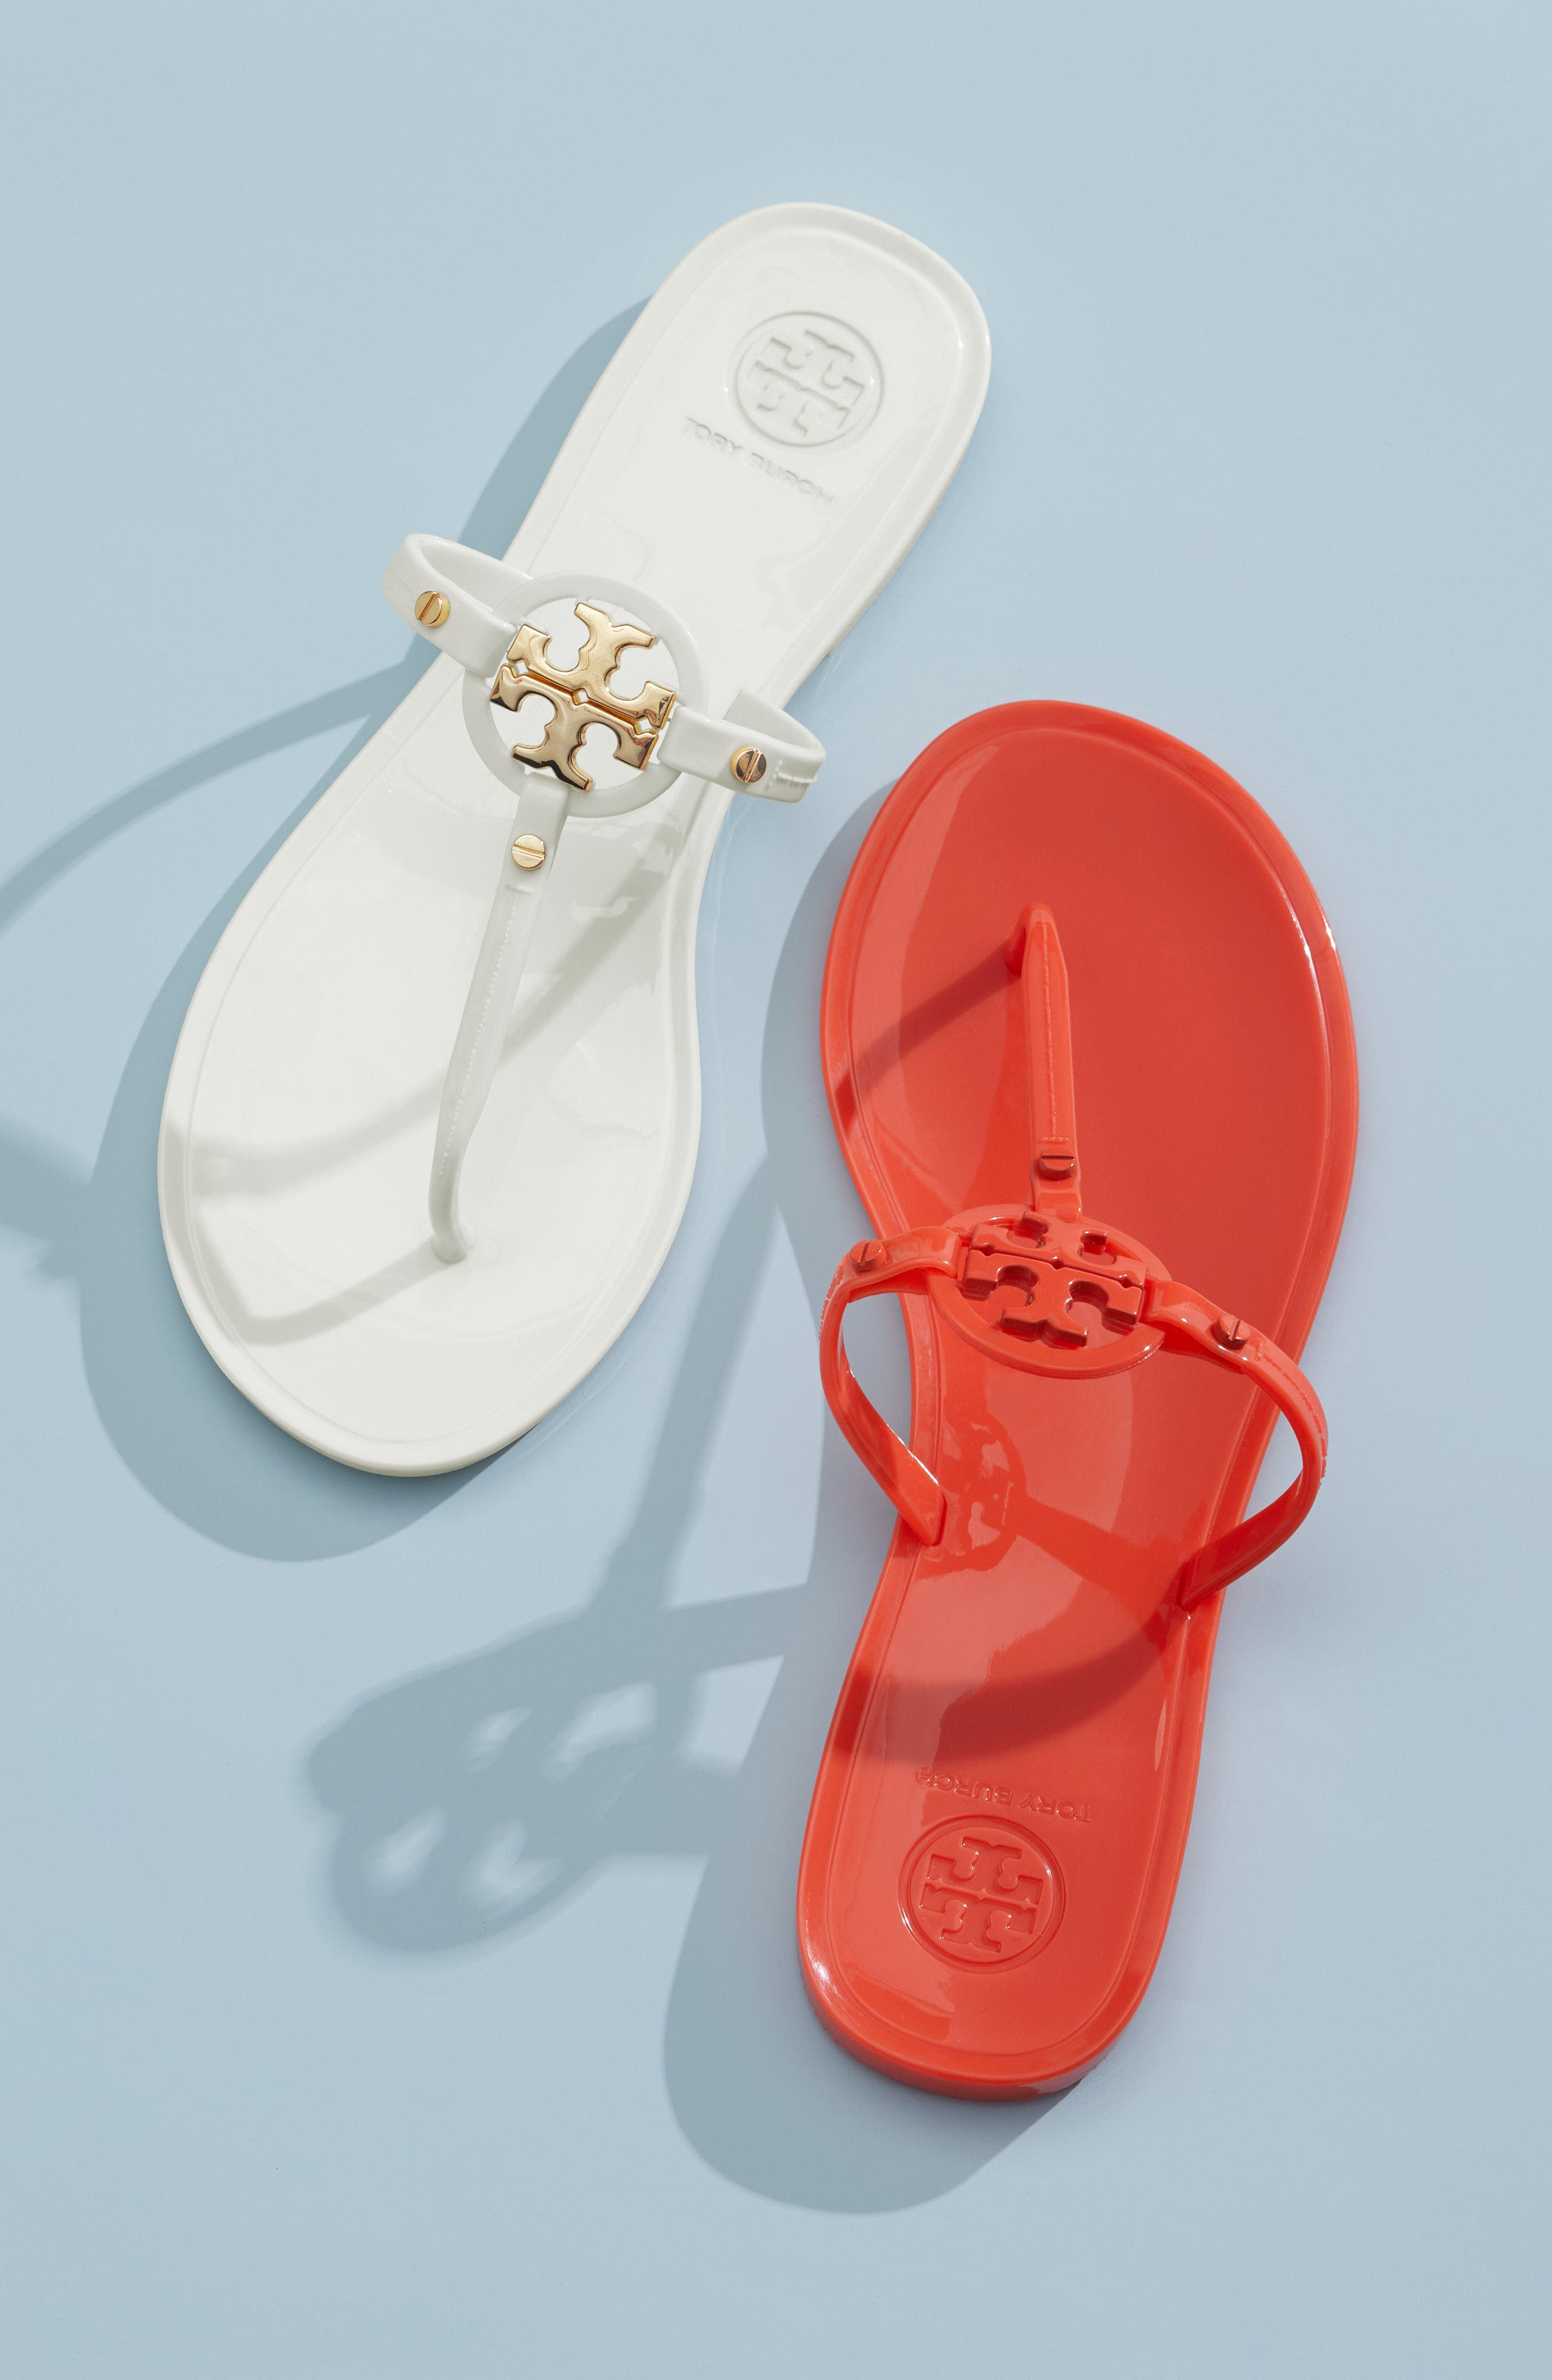 TORY BURCH,                             'Mini Miller' Flat Sandal,                             Alternate thumbnail 7, color,                             RED